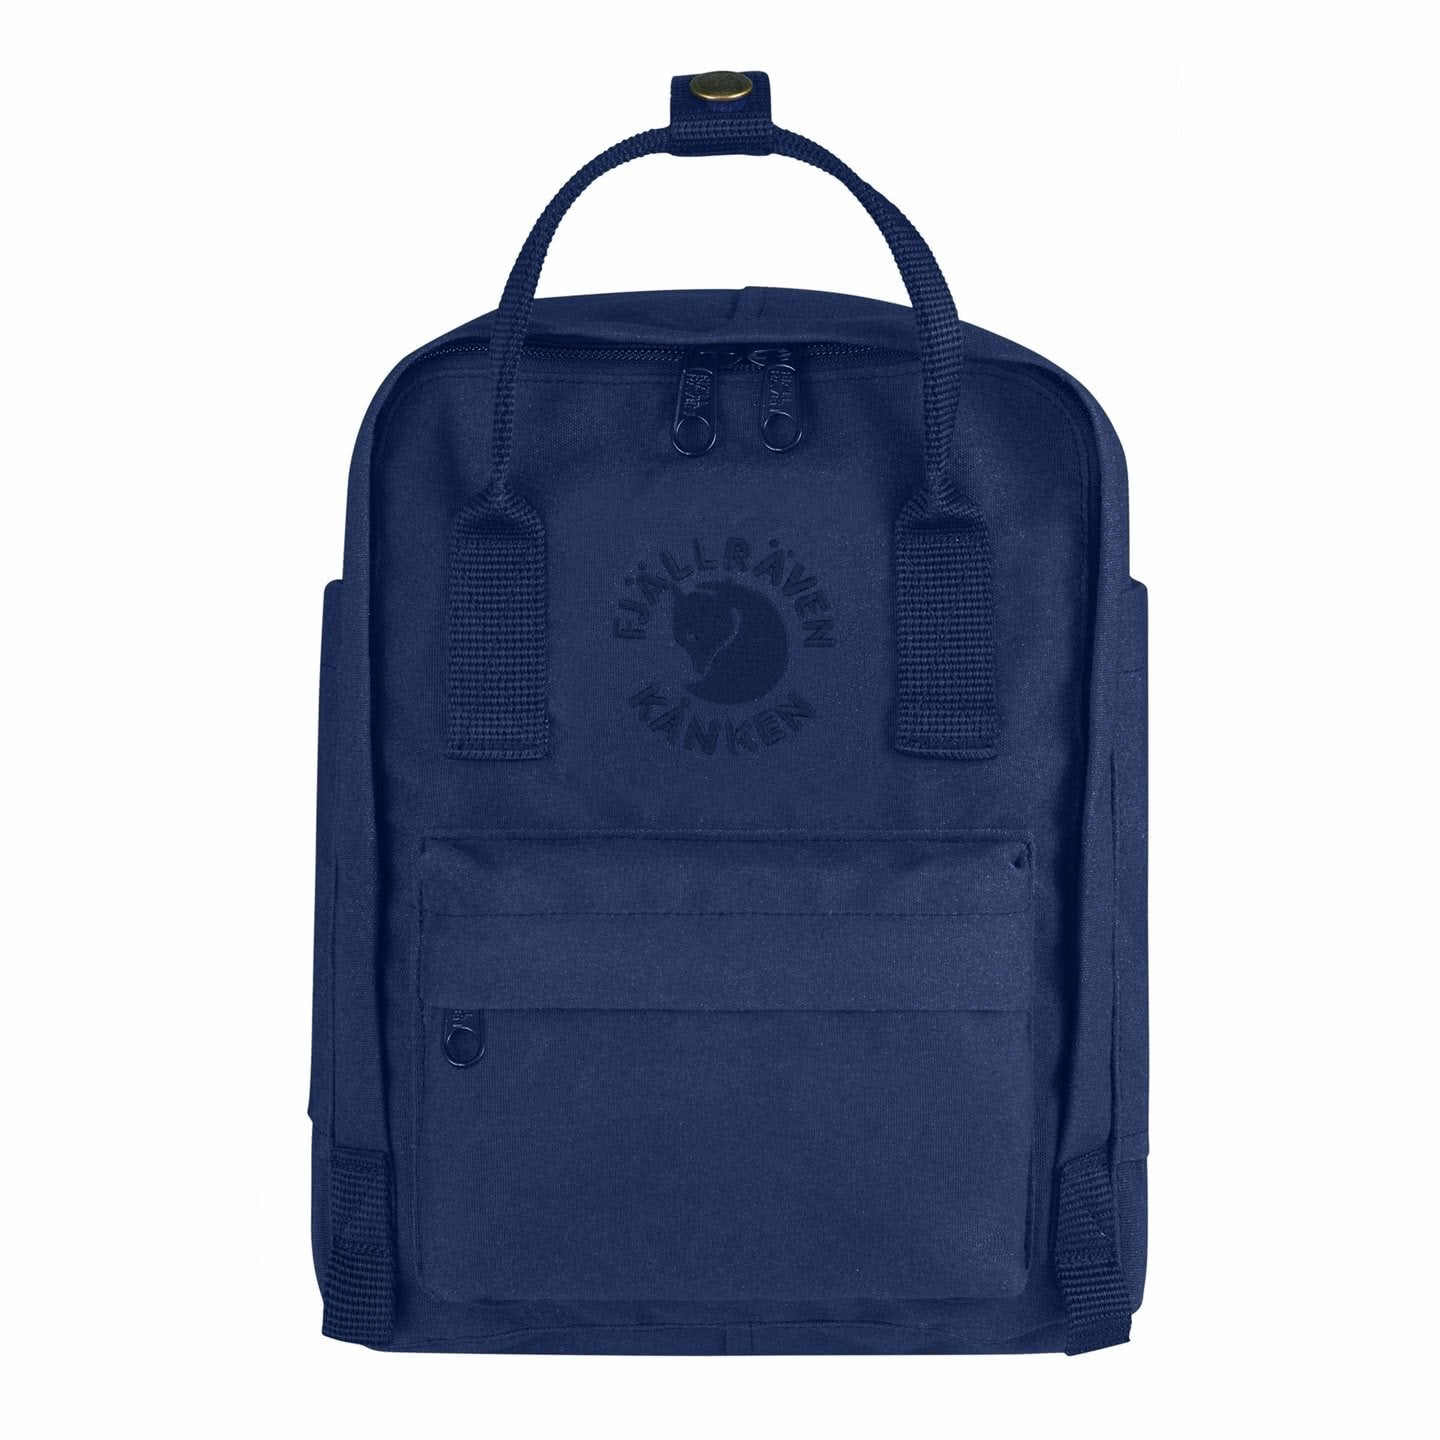 Fjallraven Re-Kanken Mini Backpack - Midnight Blue - Find Your Feet Australia Hobart Launceston Tasmania